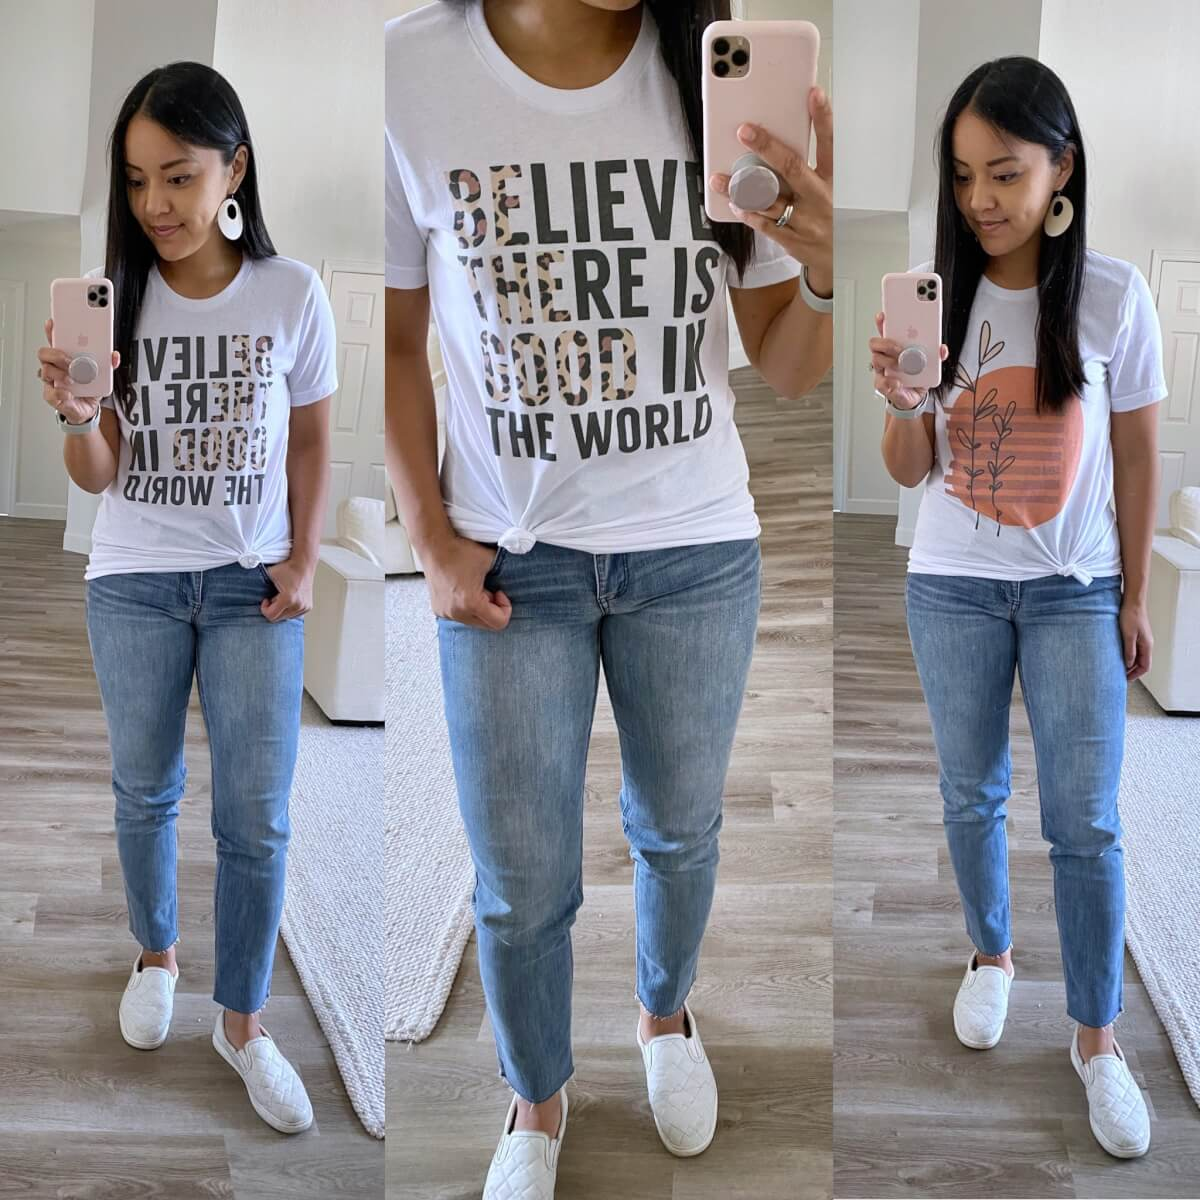 Casual Outfit Early Fall: Believe There Is Good in the World t-shirt + abstract sun plant tshirt + light straight leg jeans + white earrings + white slip-on sneakers